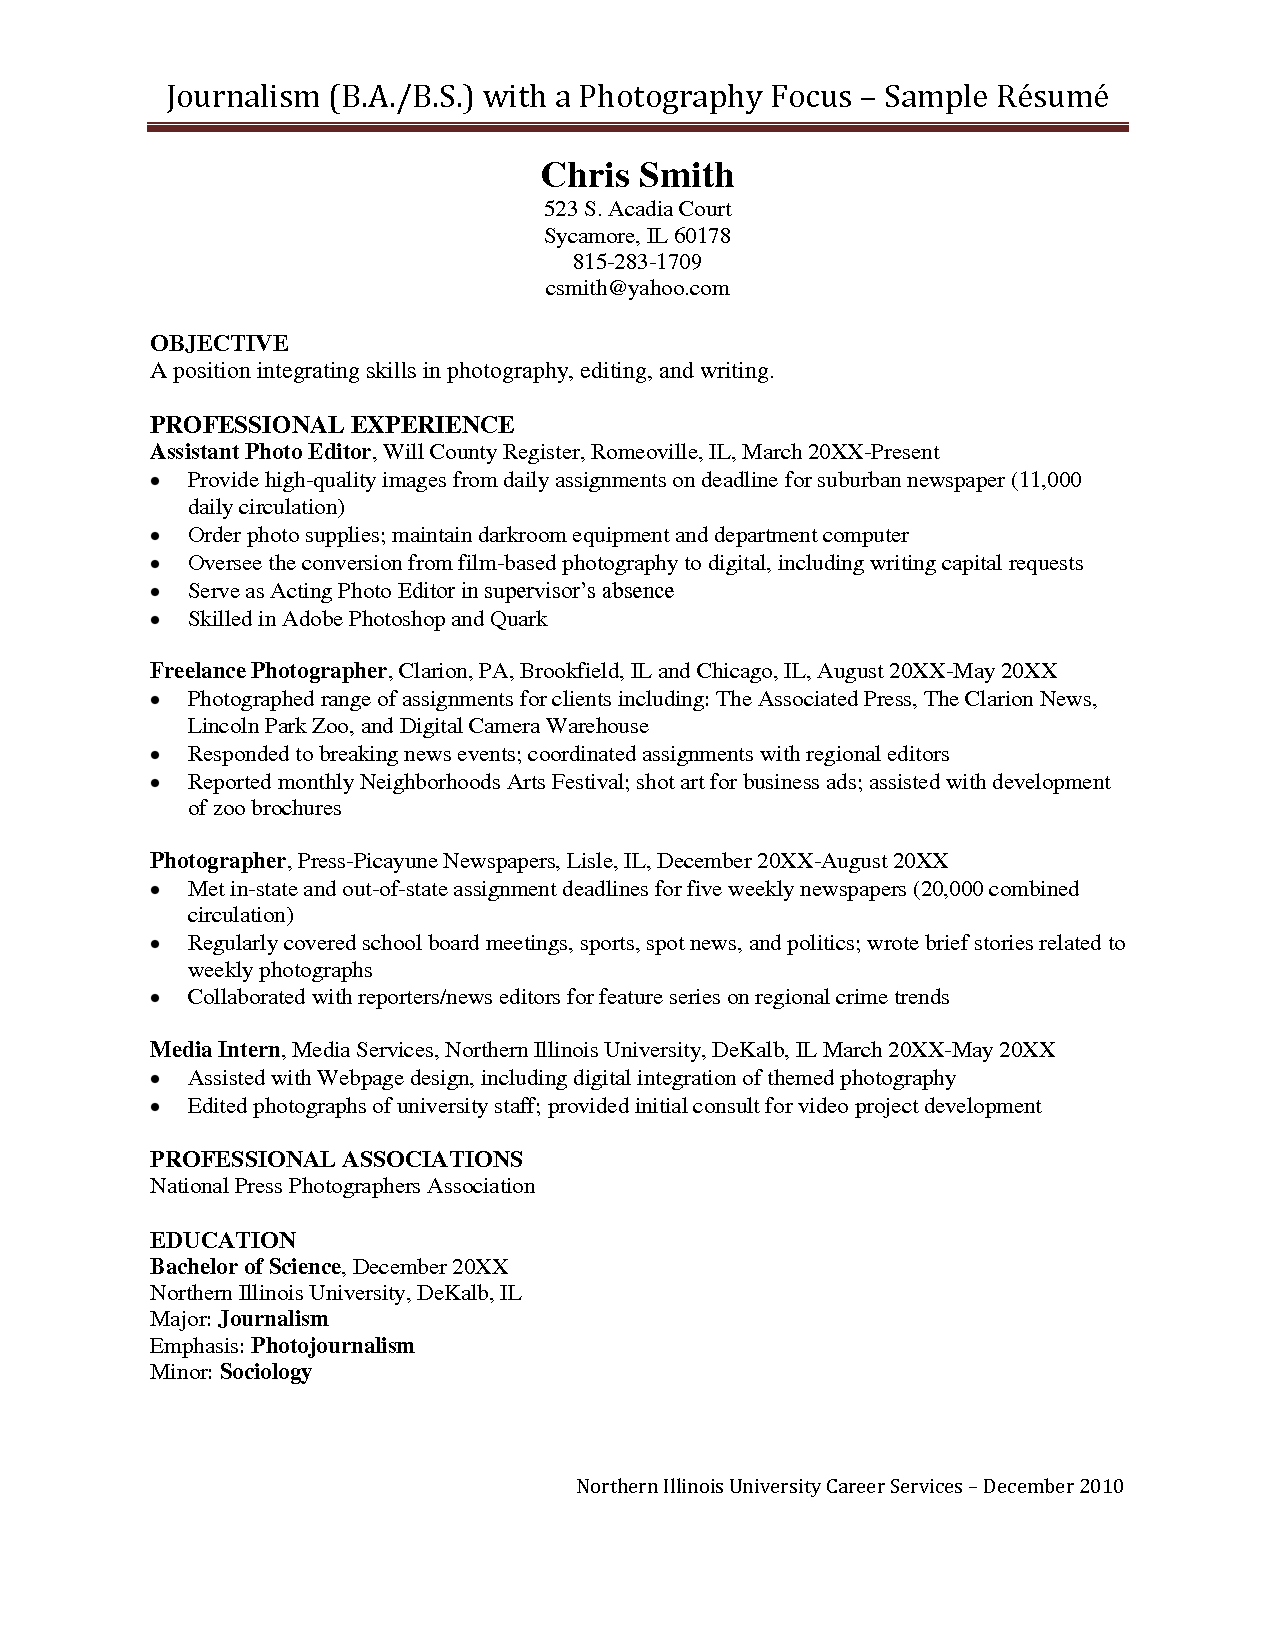 scope of work template research sample resume. Black Bedroom Furniture Sets. Home Design Ideas